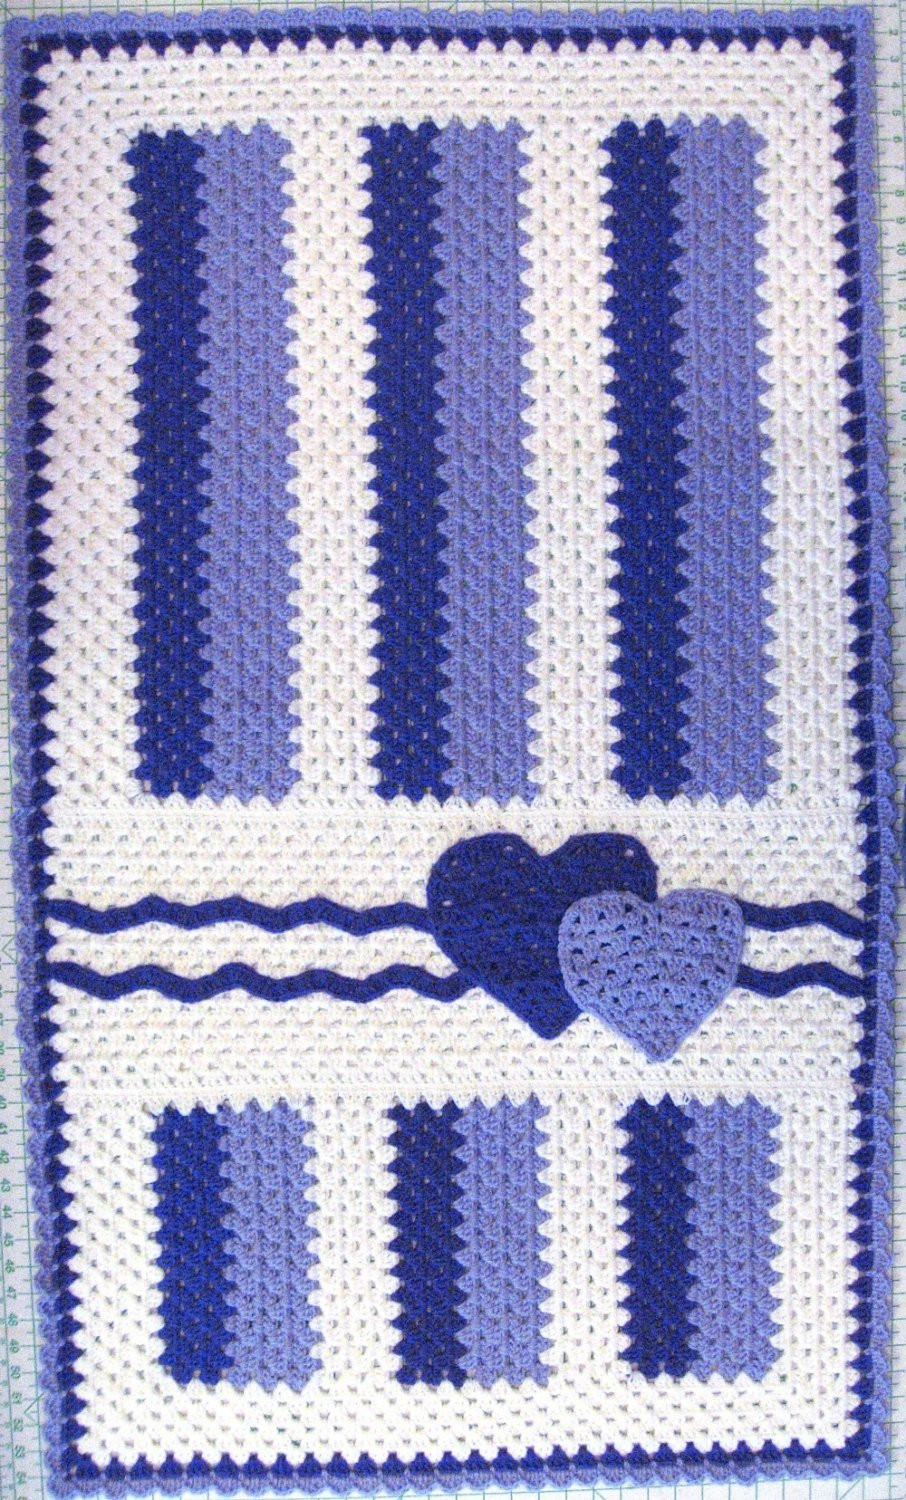 Heart Afghan Crochet Pattern Fresh Pdf Pattern Crocheted Baby toddler Afghan Granny Heart Cameo Of Top 48 Models Heart Afghan Crochet Pattern